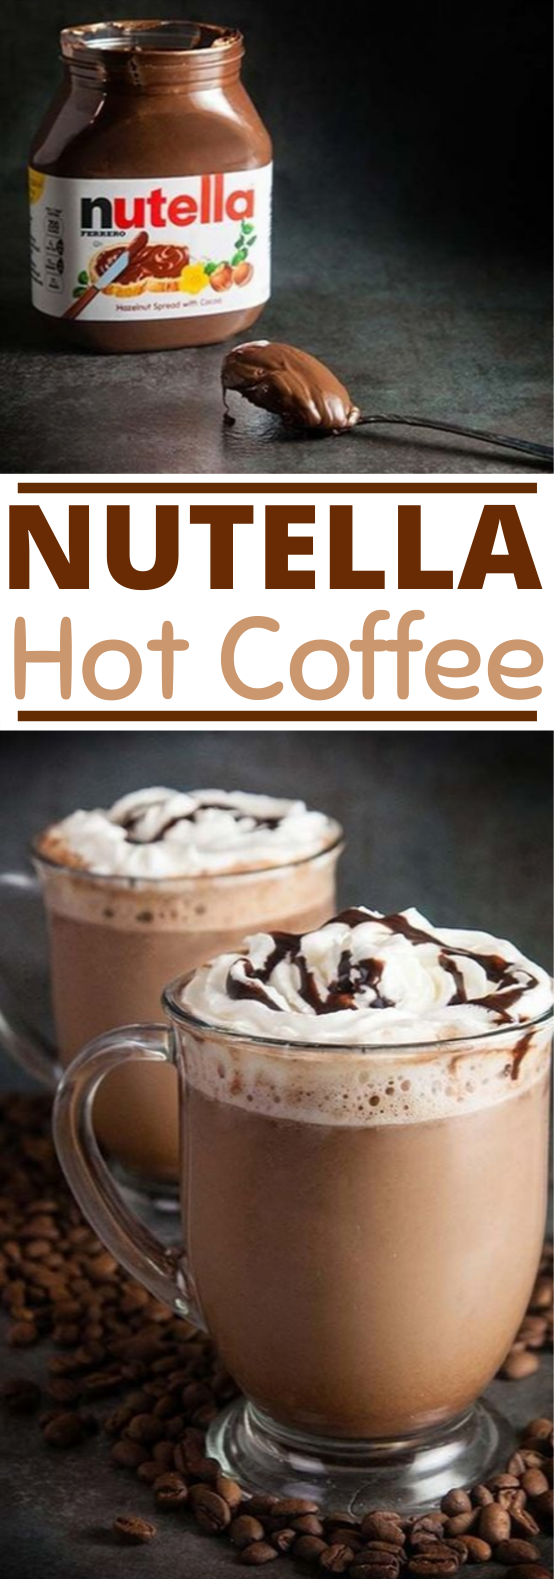 Nutella Hot Coffee #coffee #drinks #hotchocolate #latte #warm